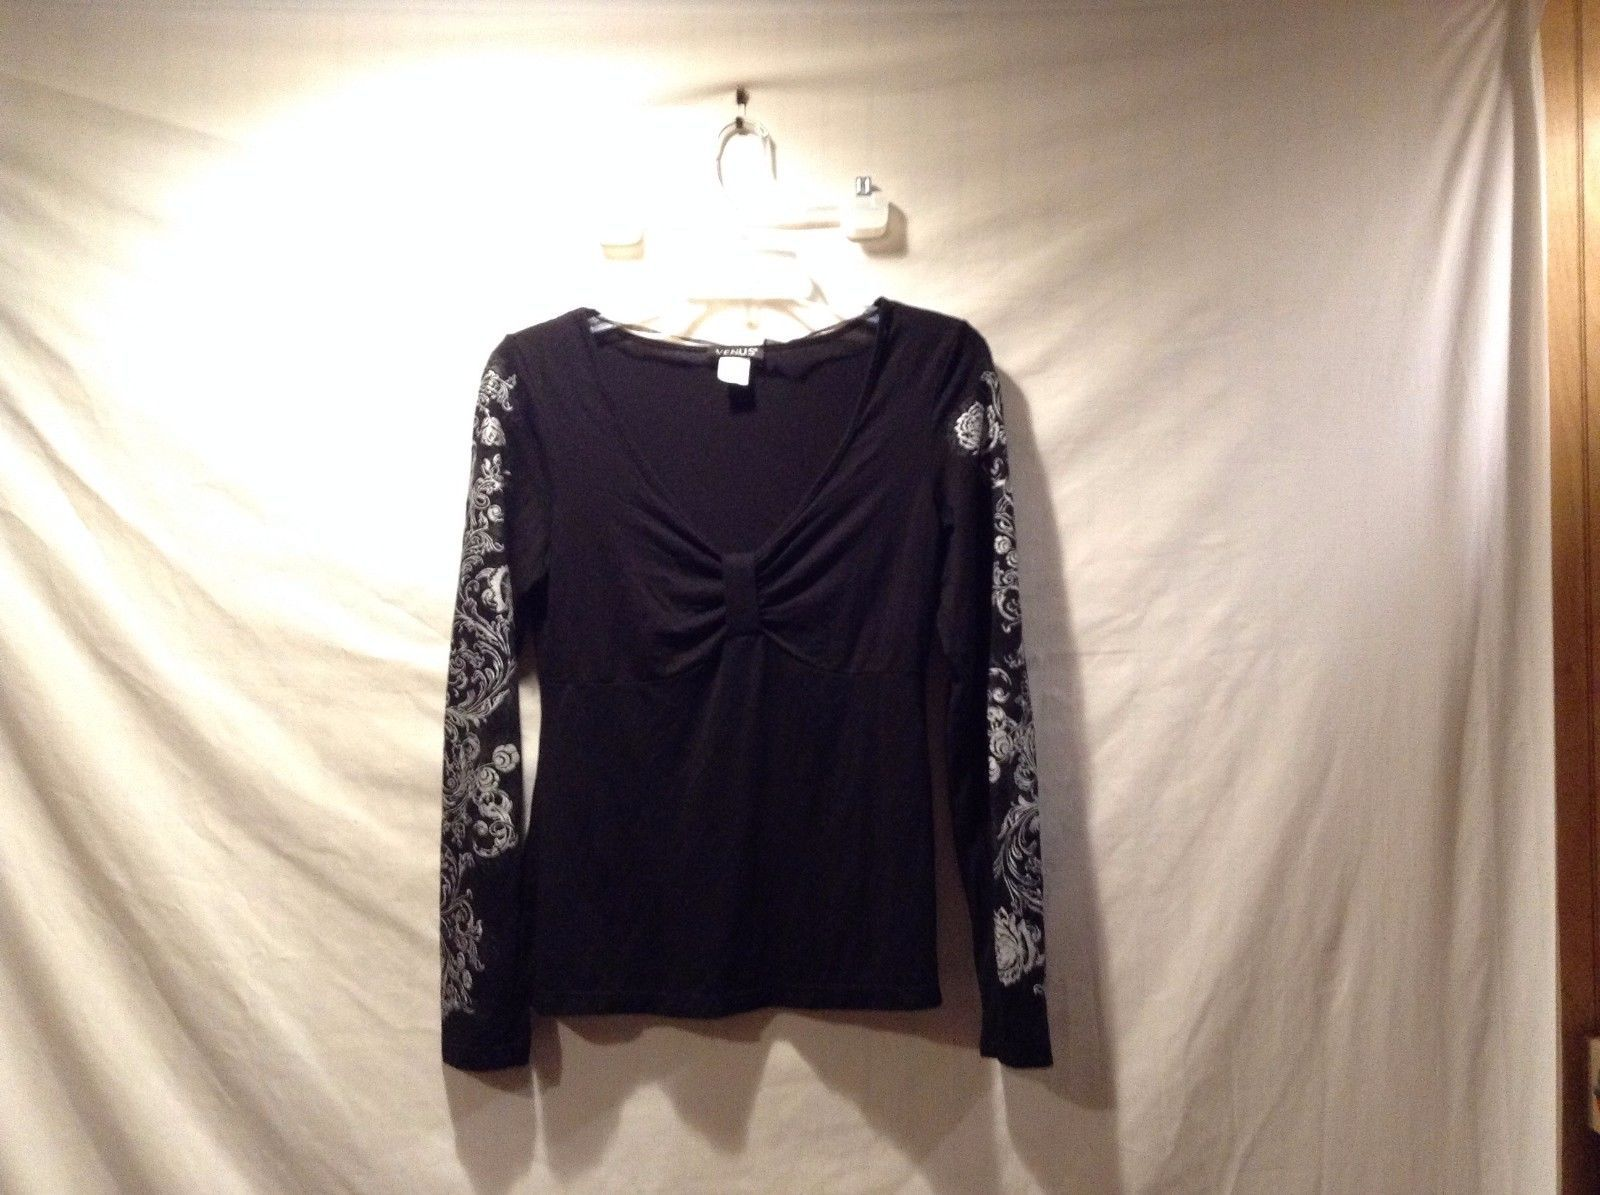 Great Condition Vans Small Black Floral Patterned Long Sleeve Elastic Shirt